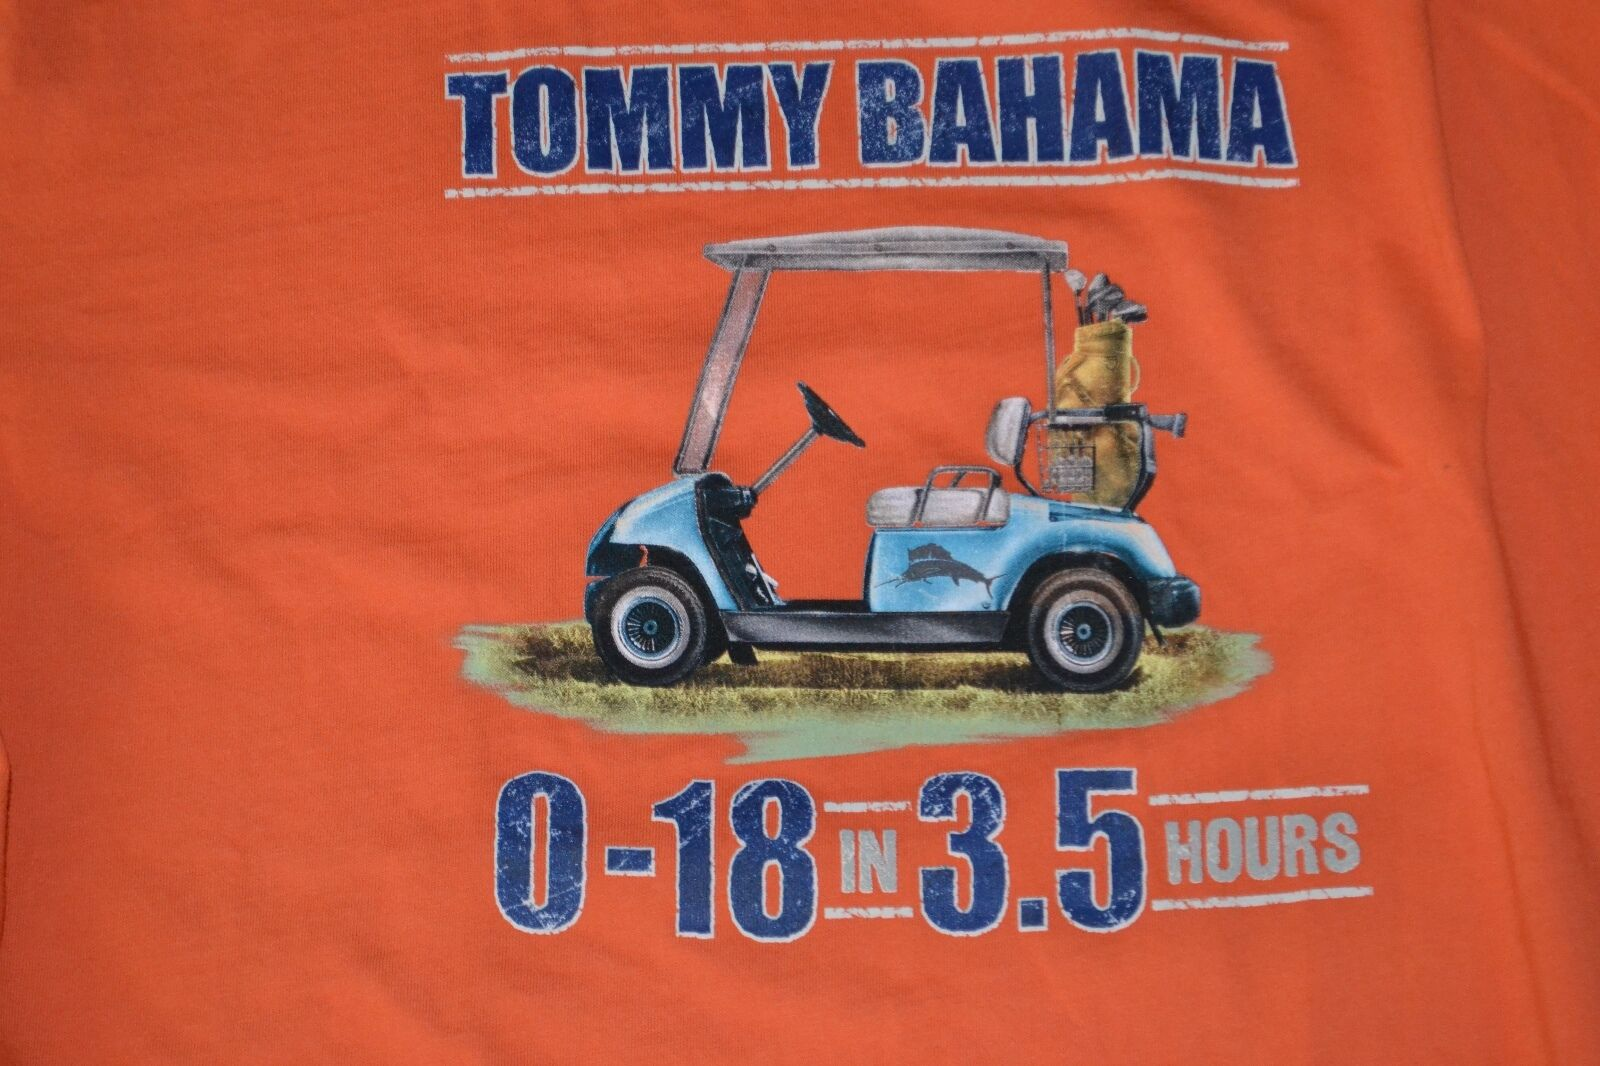 Tommy Bahama 0-18 in 3.5 Hours Golf Orange Shirt Small | eBay on nike golf cart, lacoste golf cart, chanel golf cart, oakley golf cart,